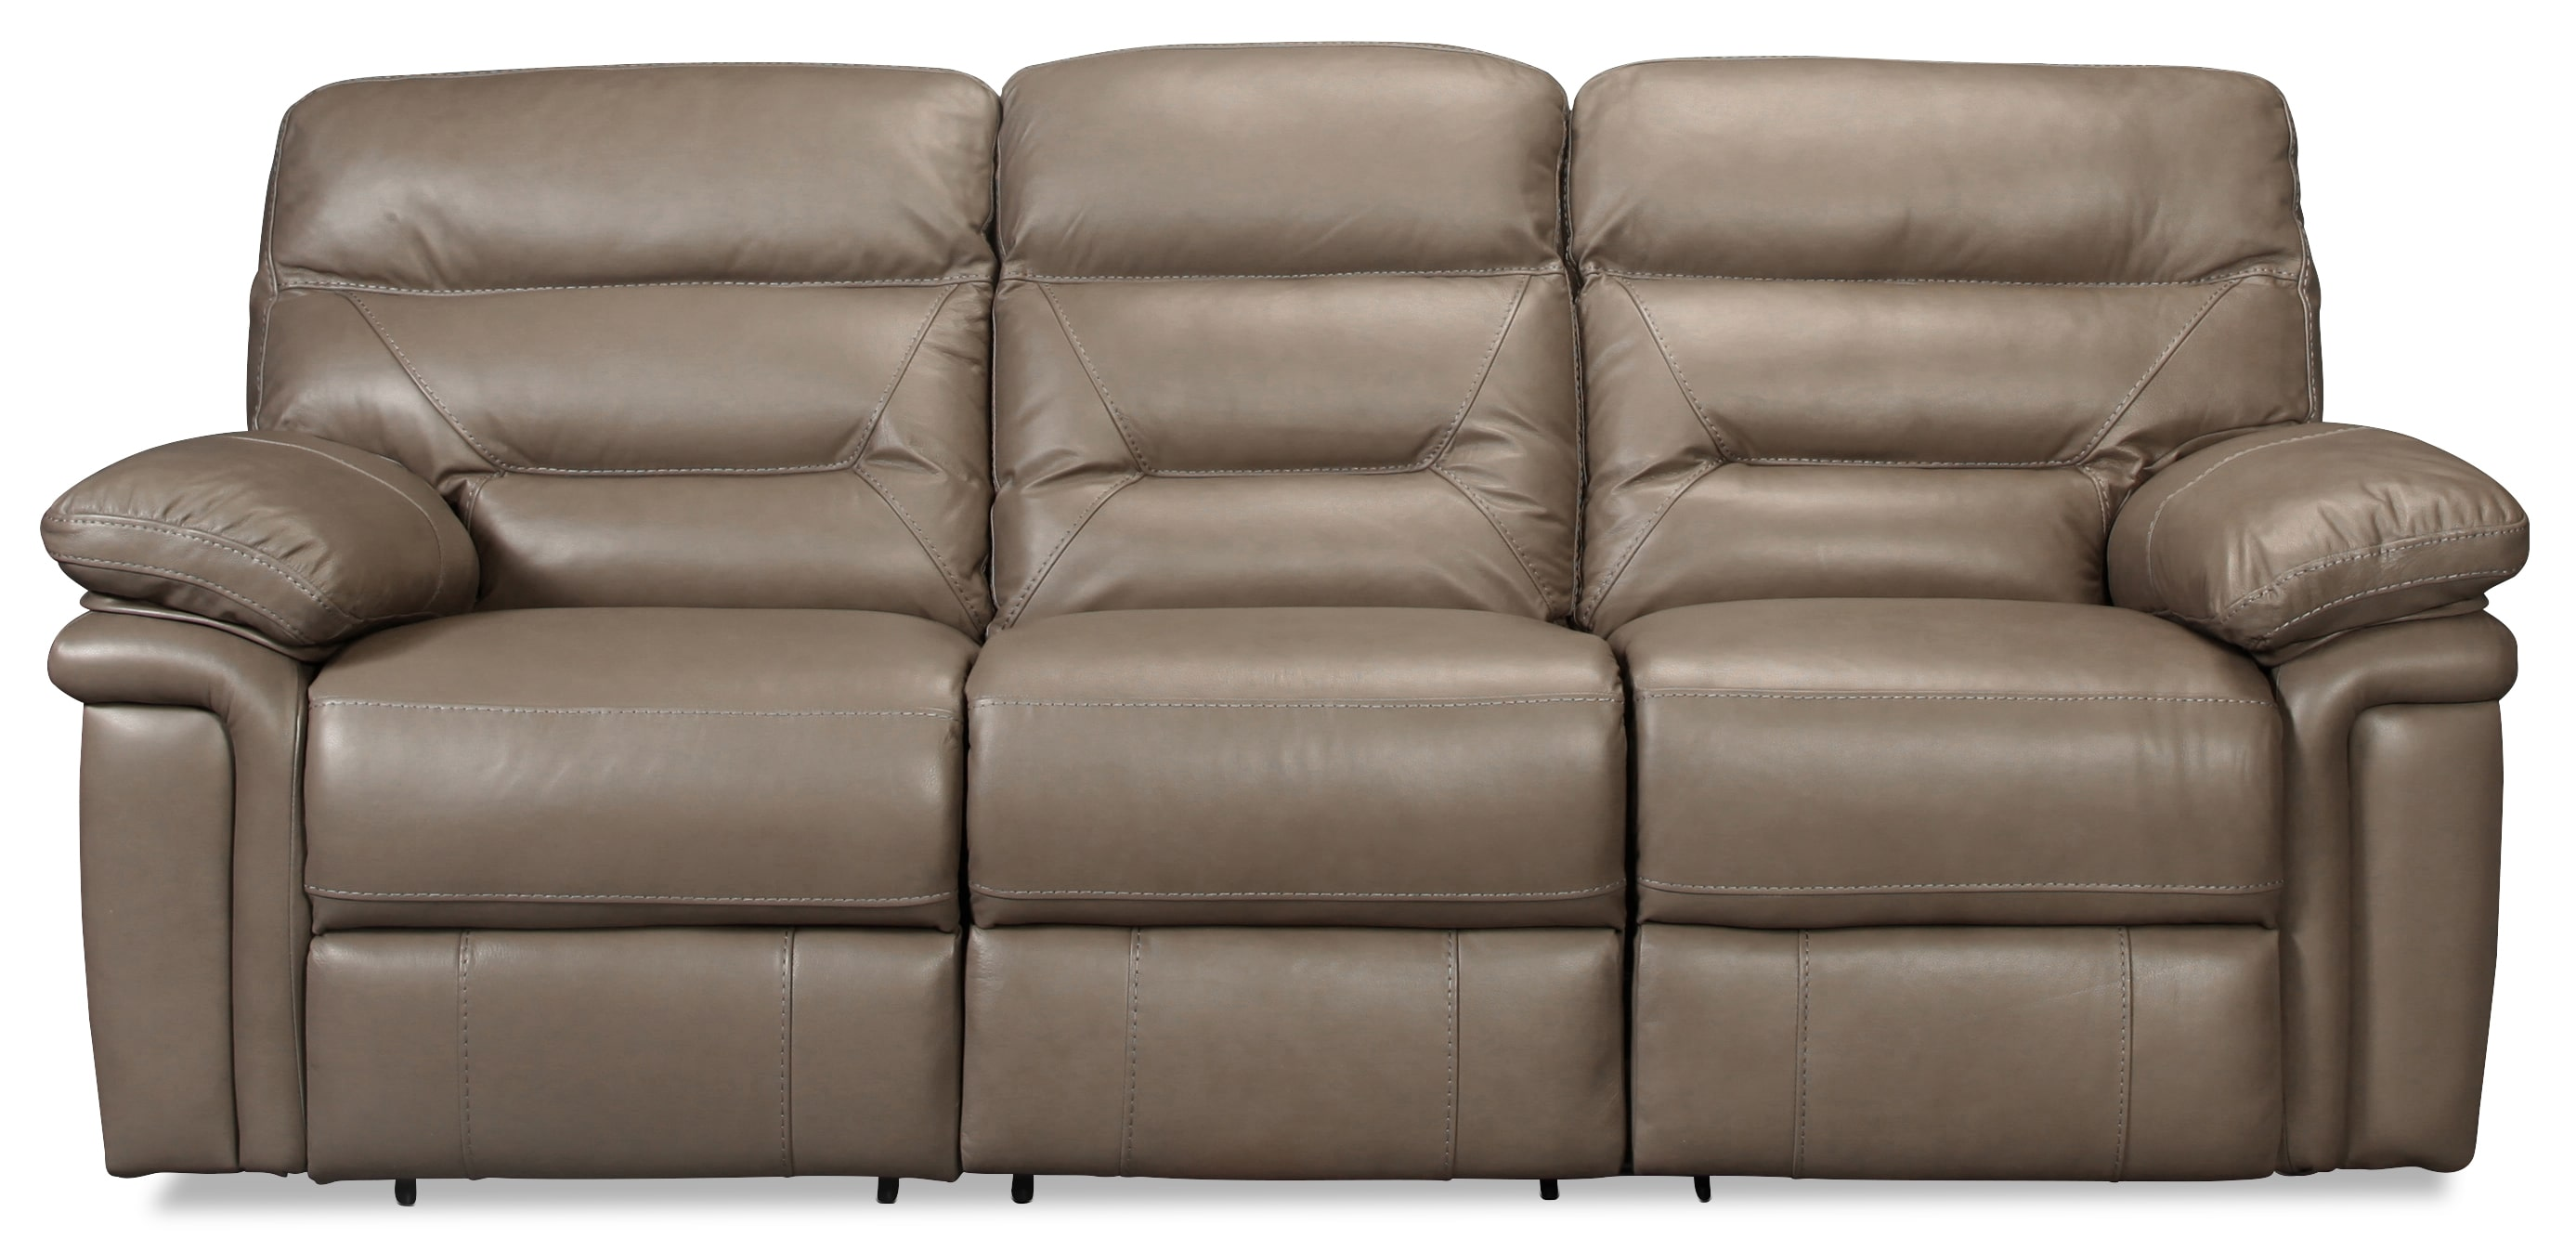 Recliner Sofa Bed Thesofa